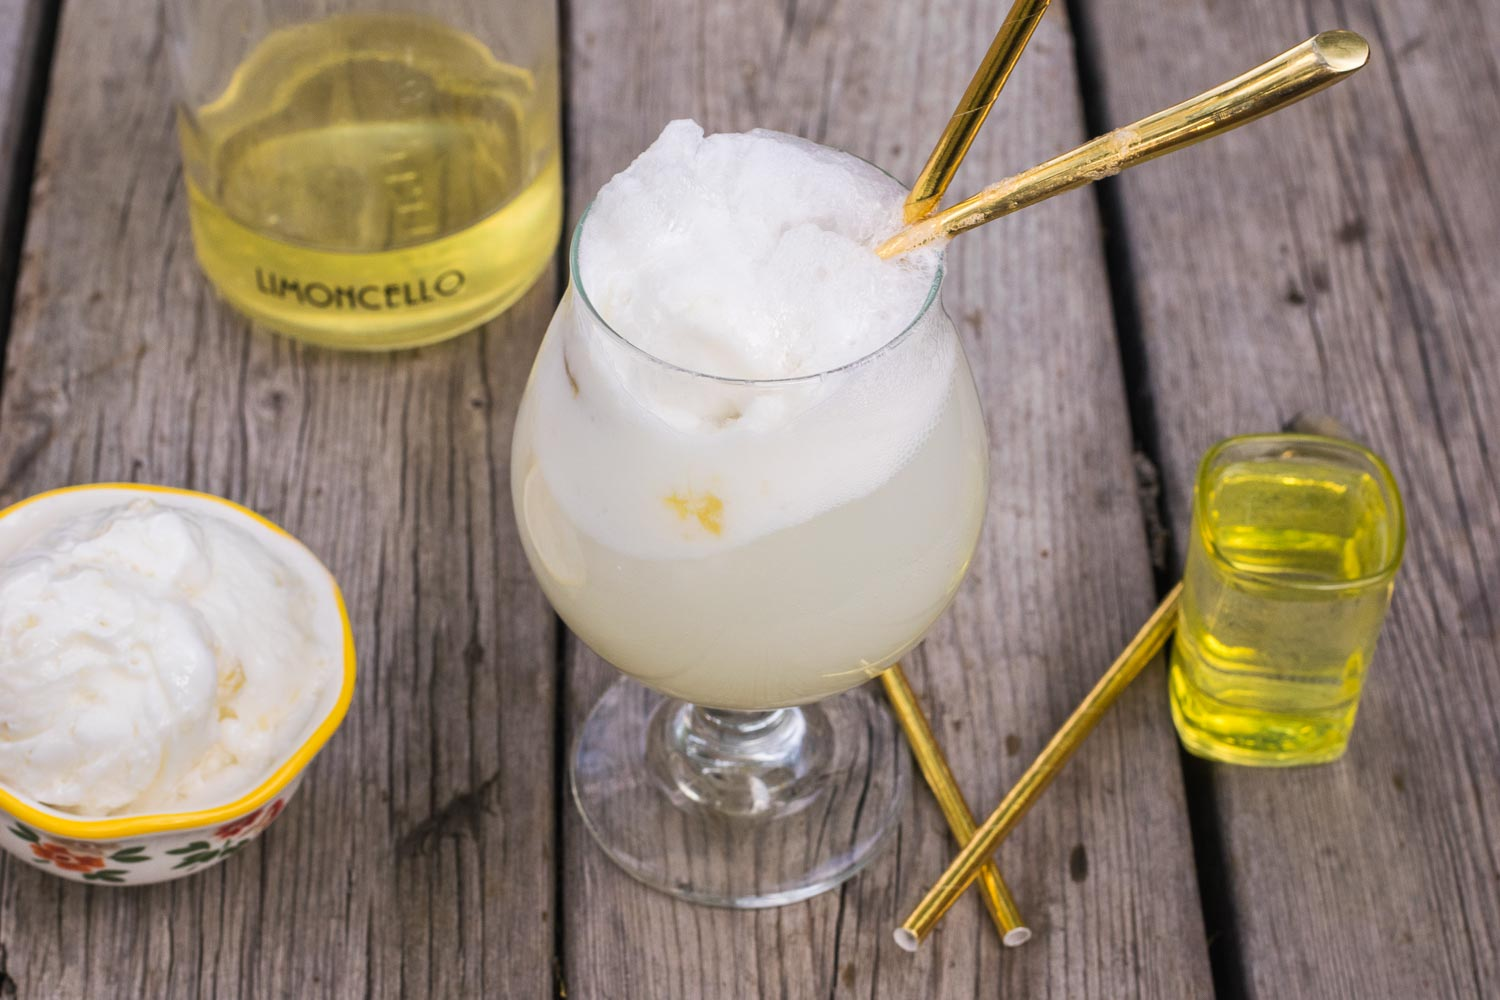 Enjoy the dog days of summer with a deliciously bubbly, wonderfully refreshing frozen treat of tart sherbet melting into sweet lemon liqueur!